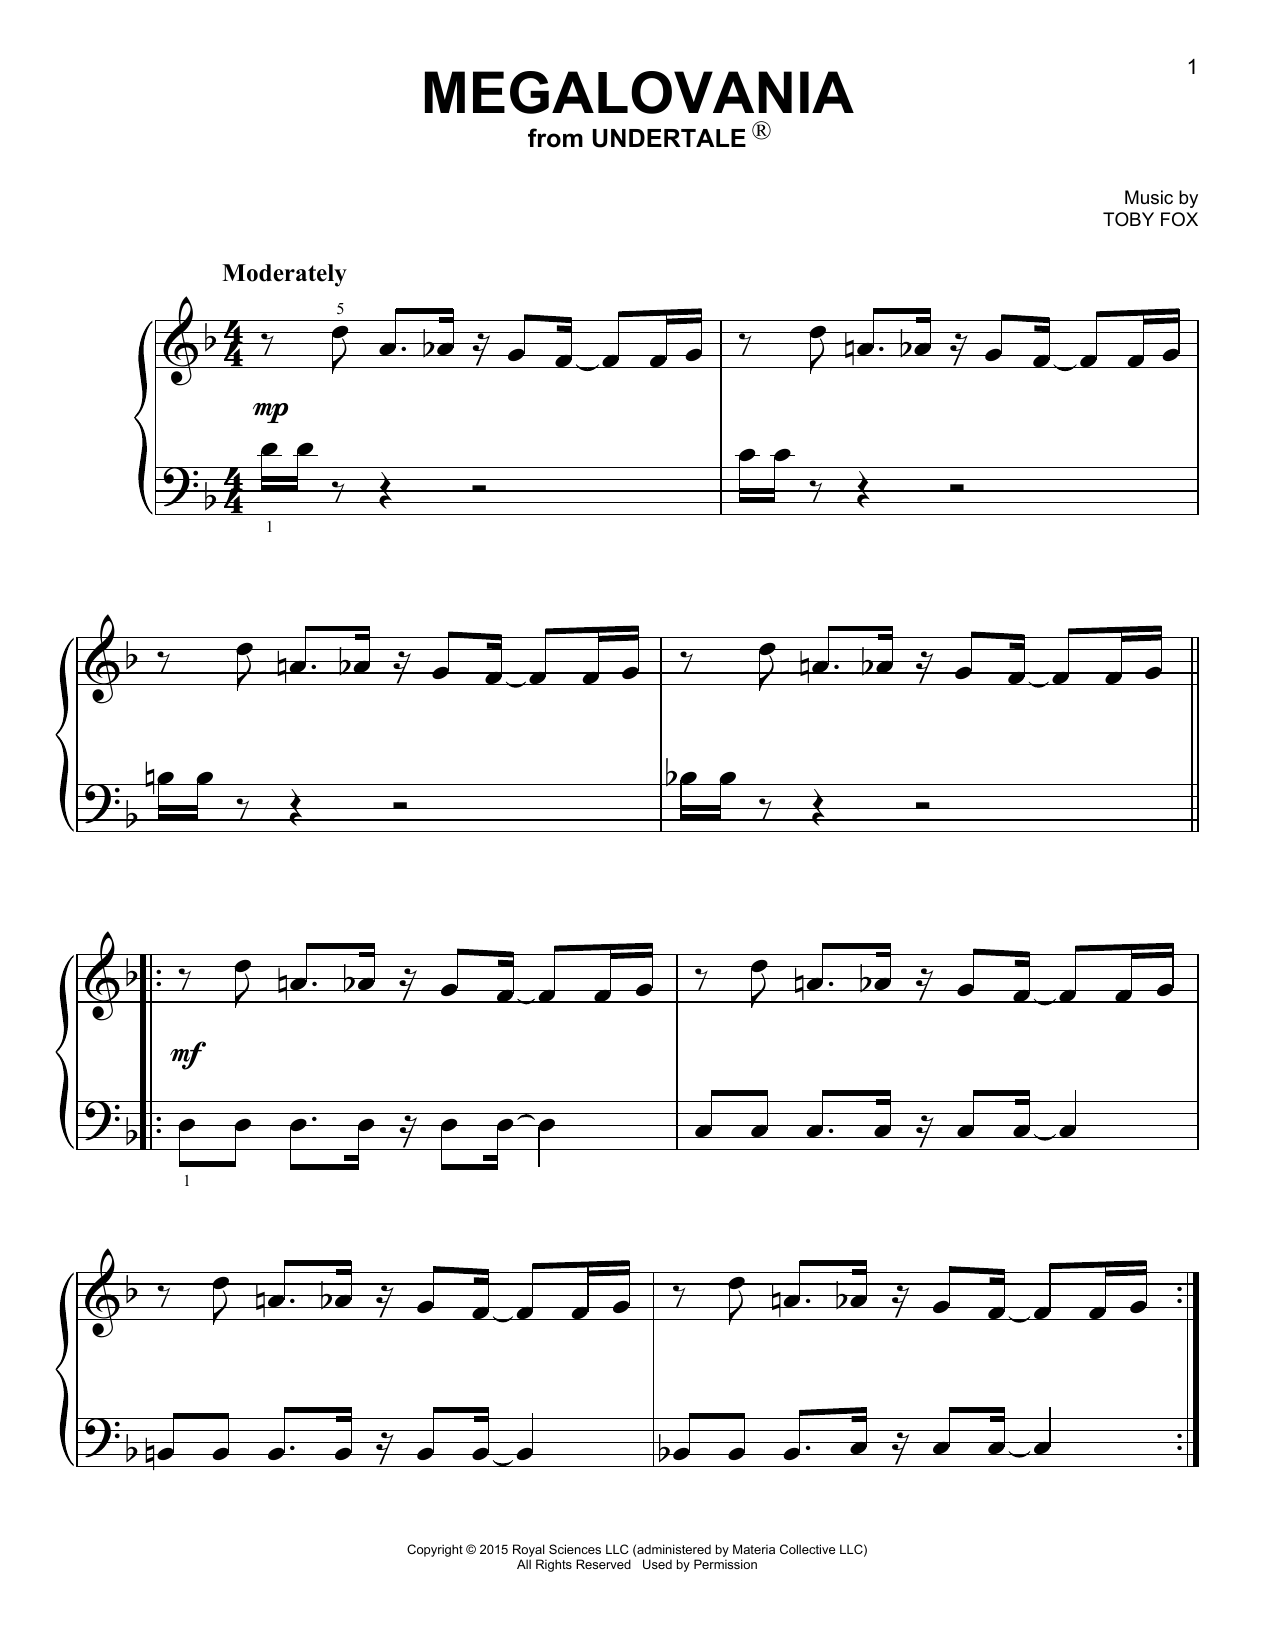 Megalovania Notes Piano : megalovania, notes, piano, Megalovania, (from, Undertale), Sheet, Music, Piano